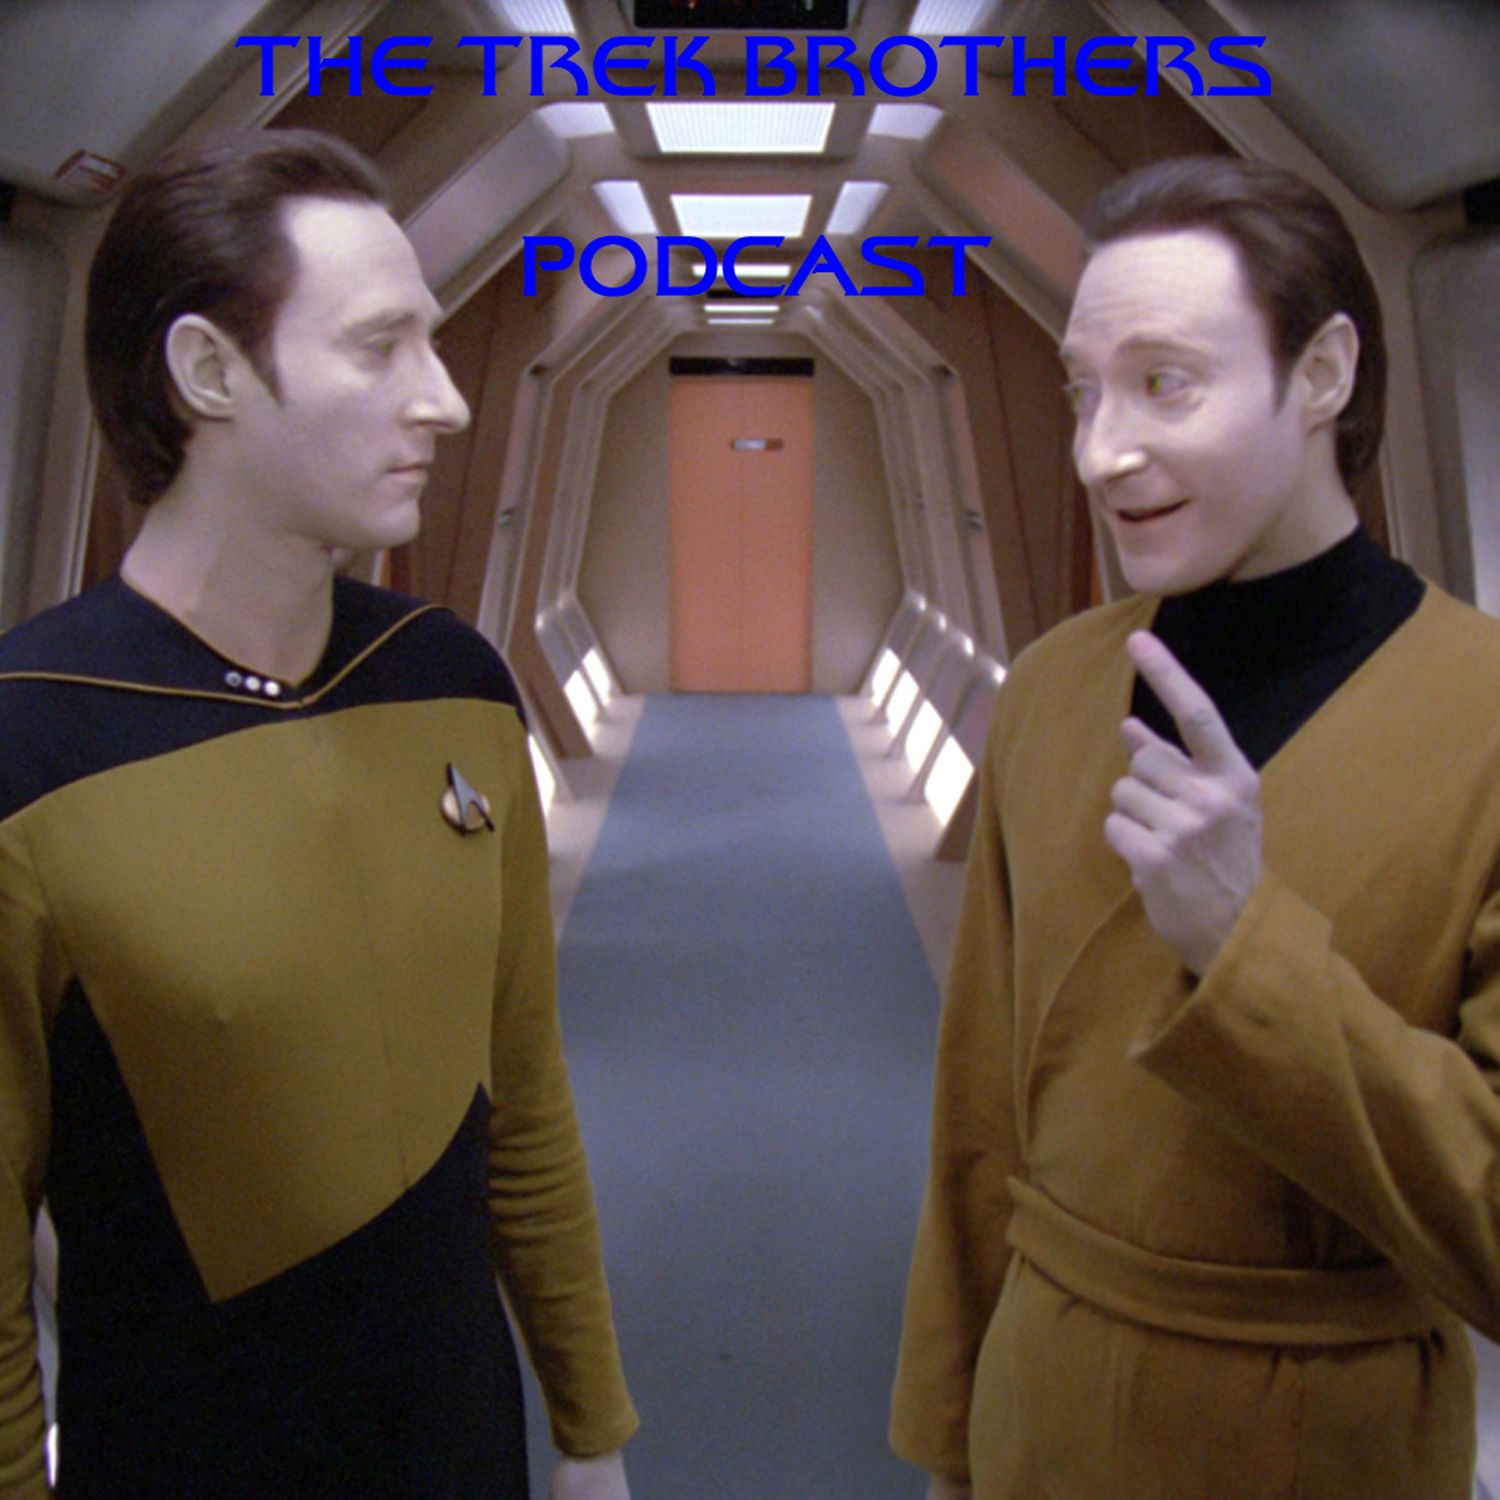 The Trek Brothers Podcast